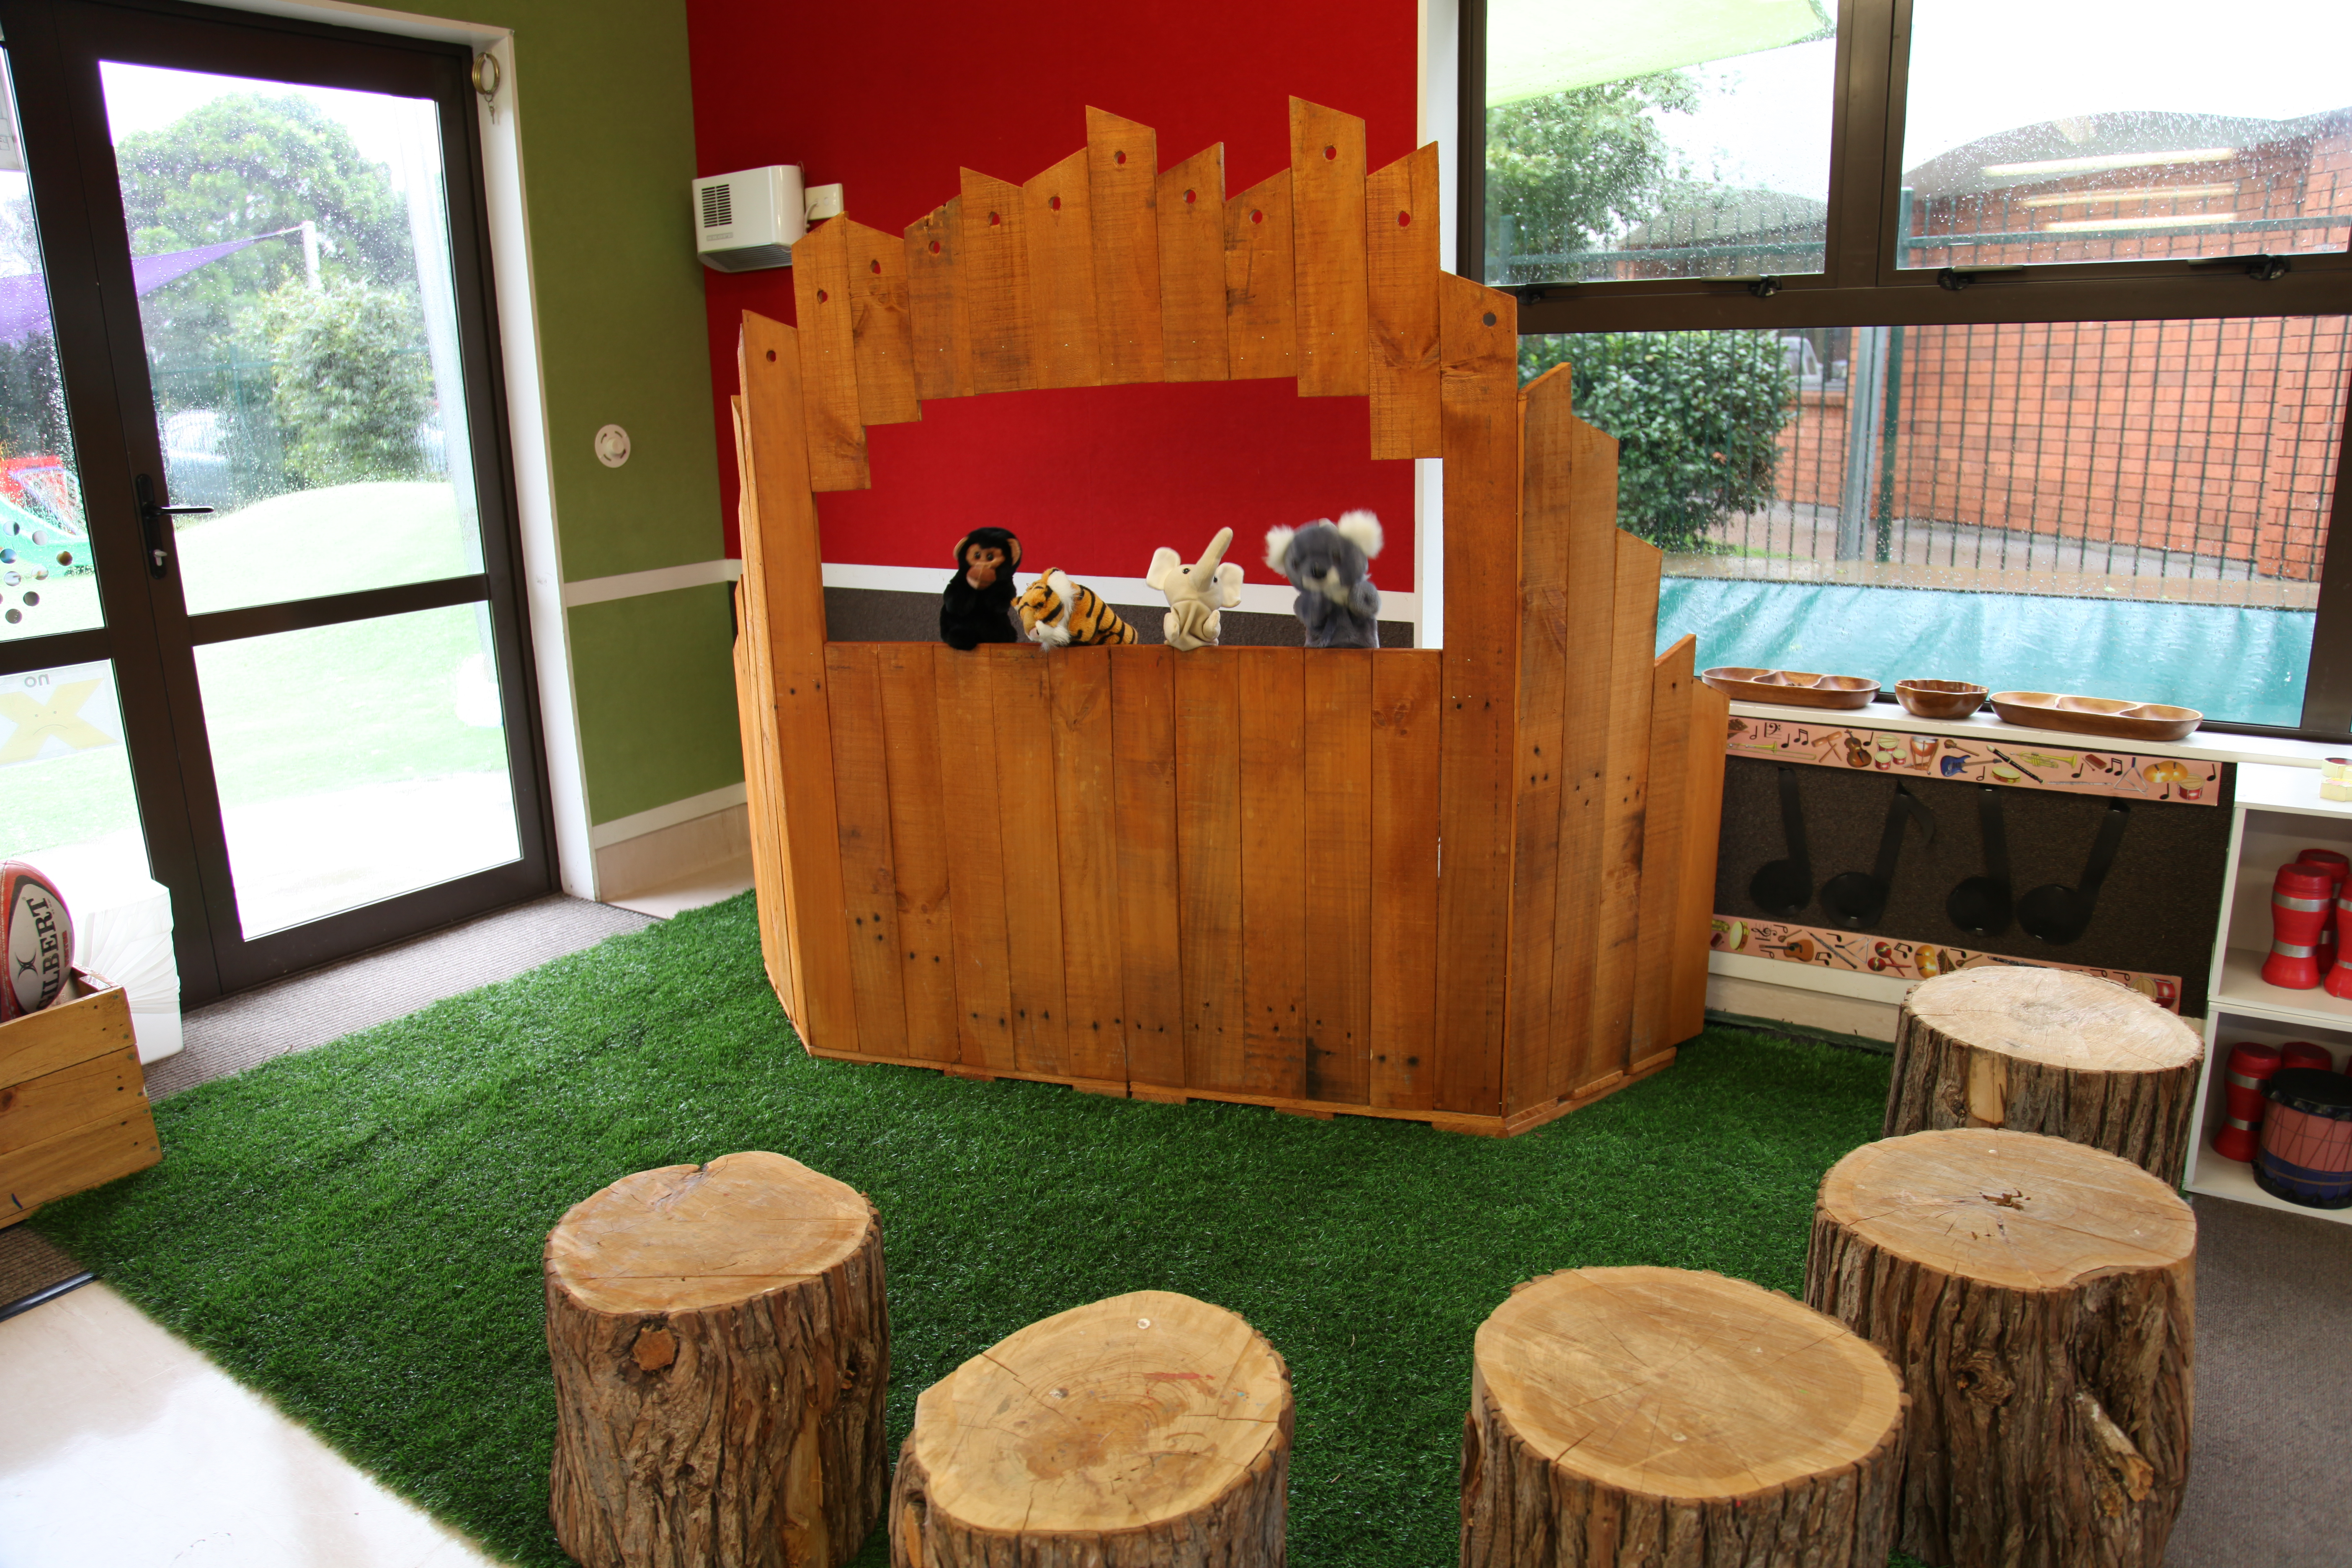 Puppet theatre made from recycled pallet